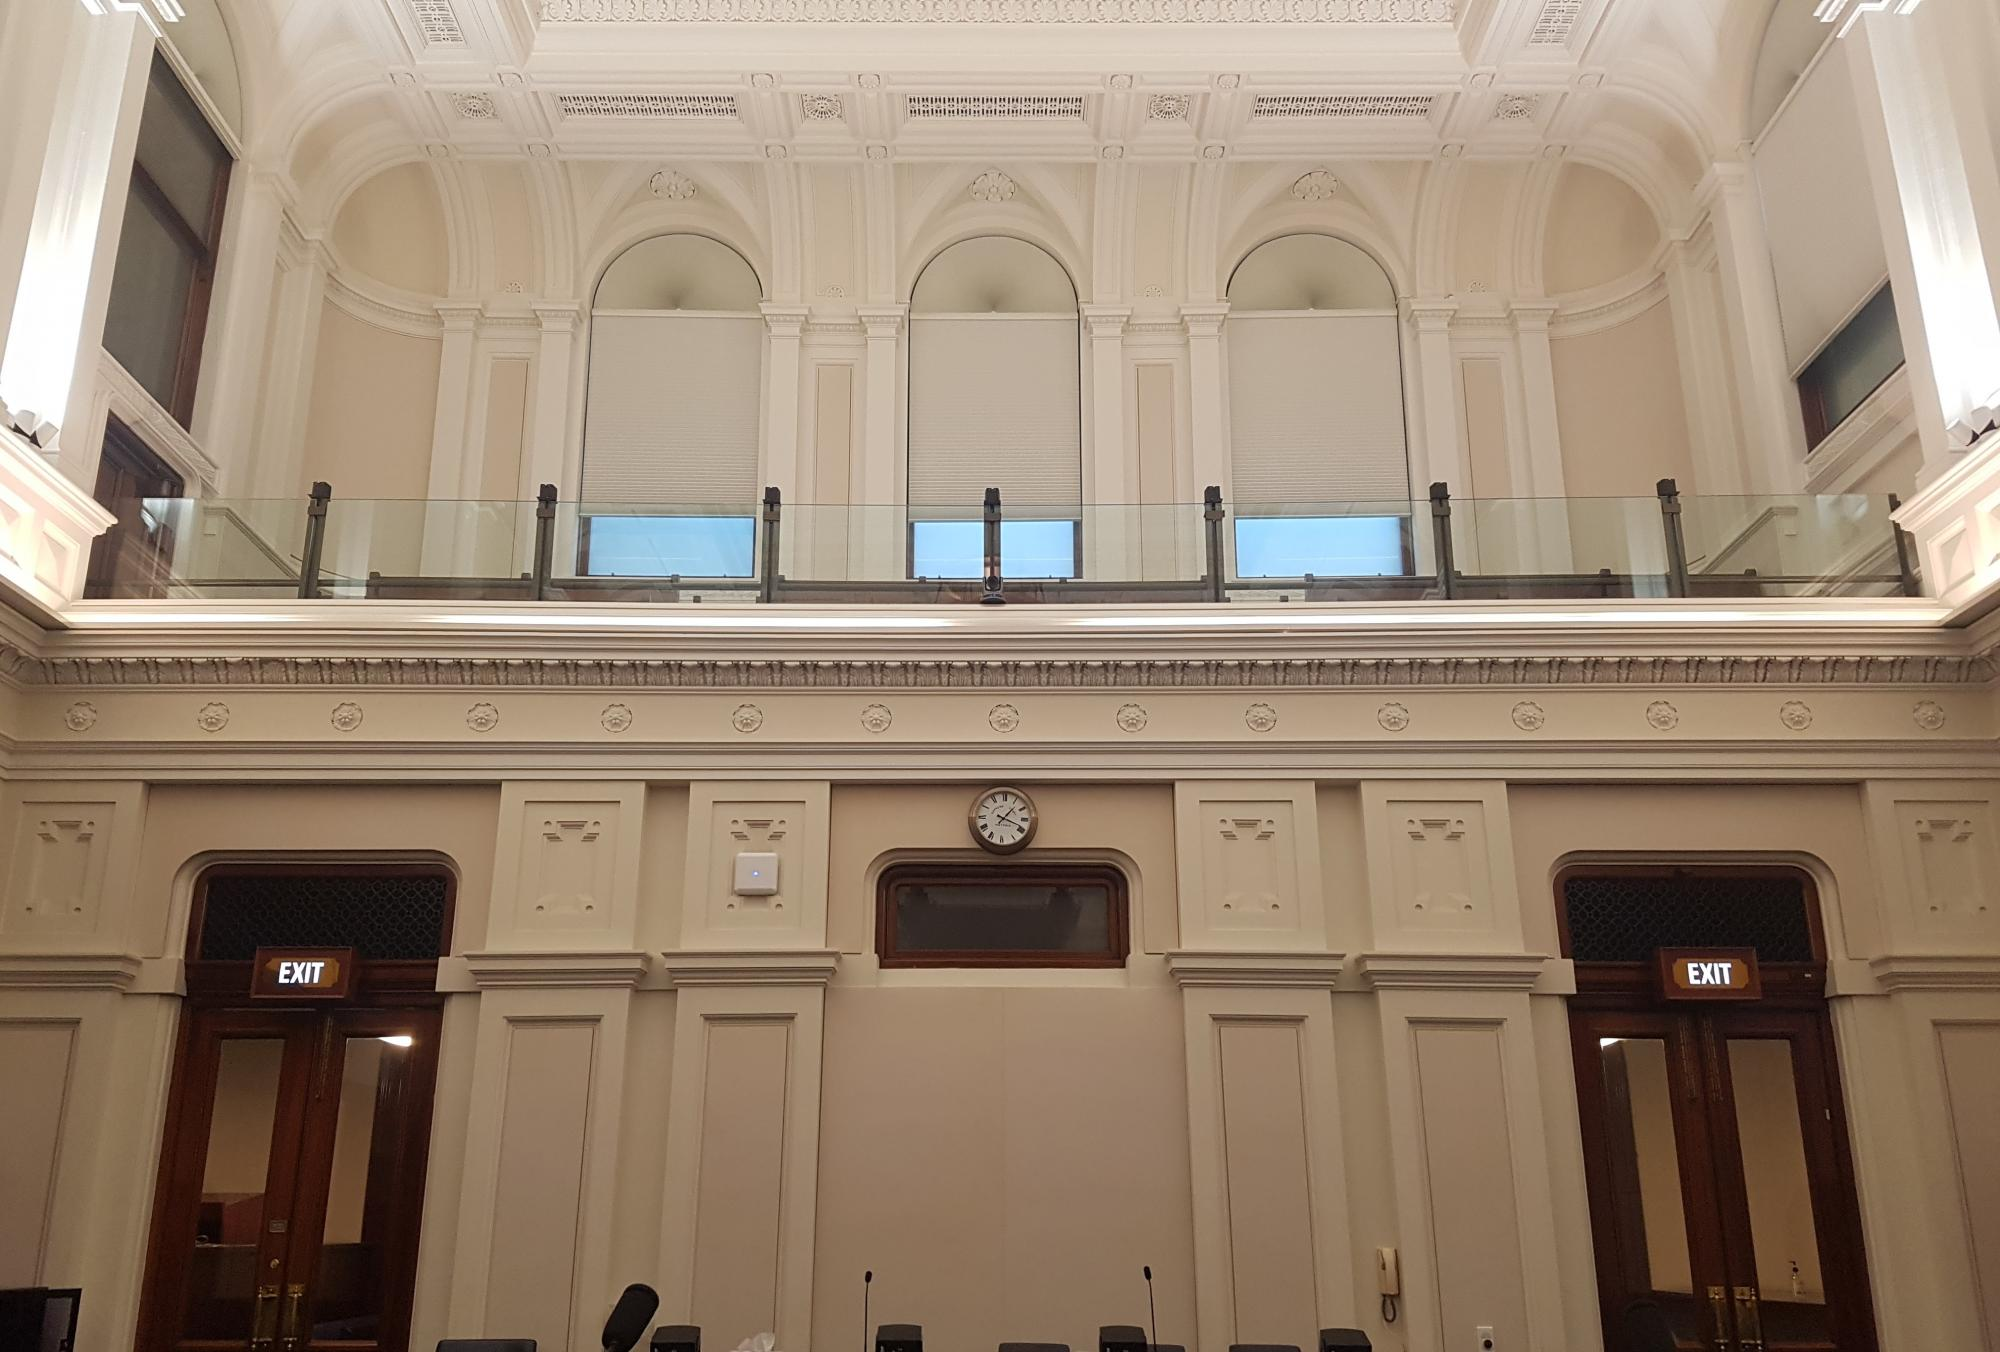 Court 11 in the Supreme Court of Victoria